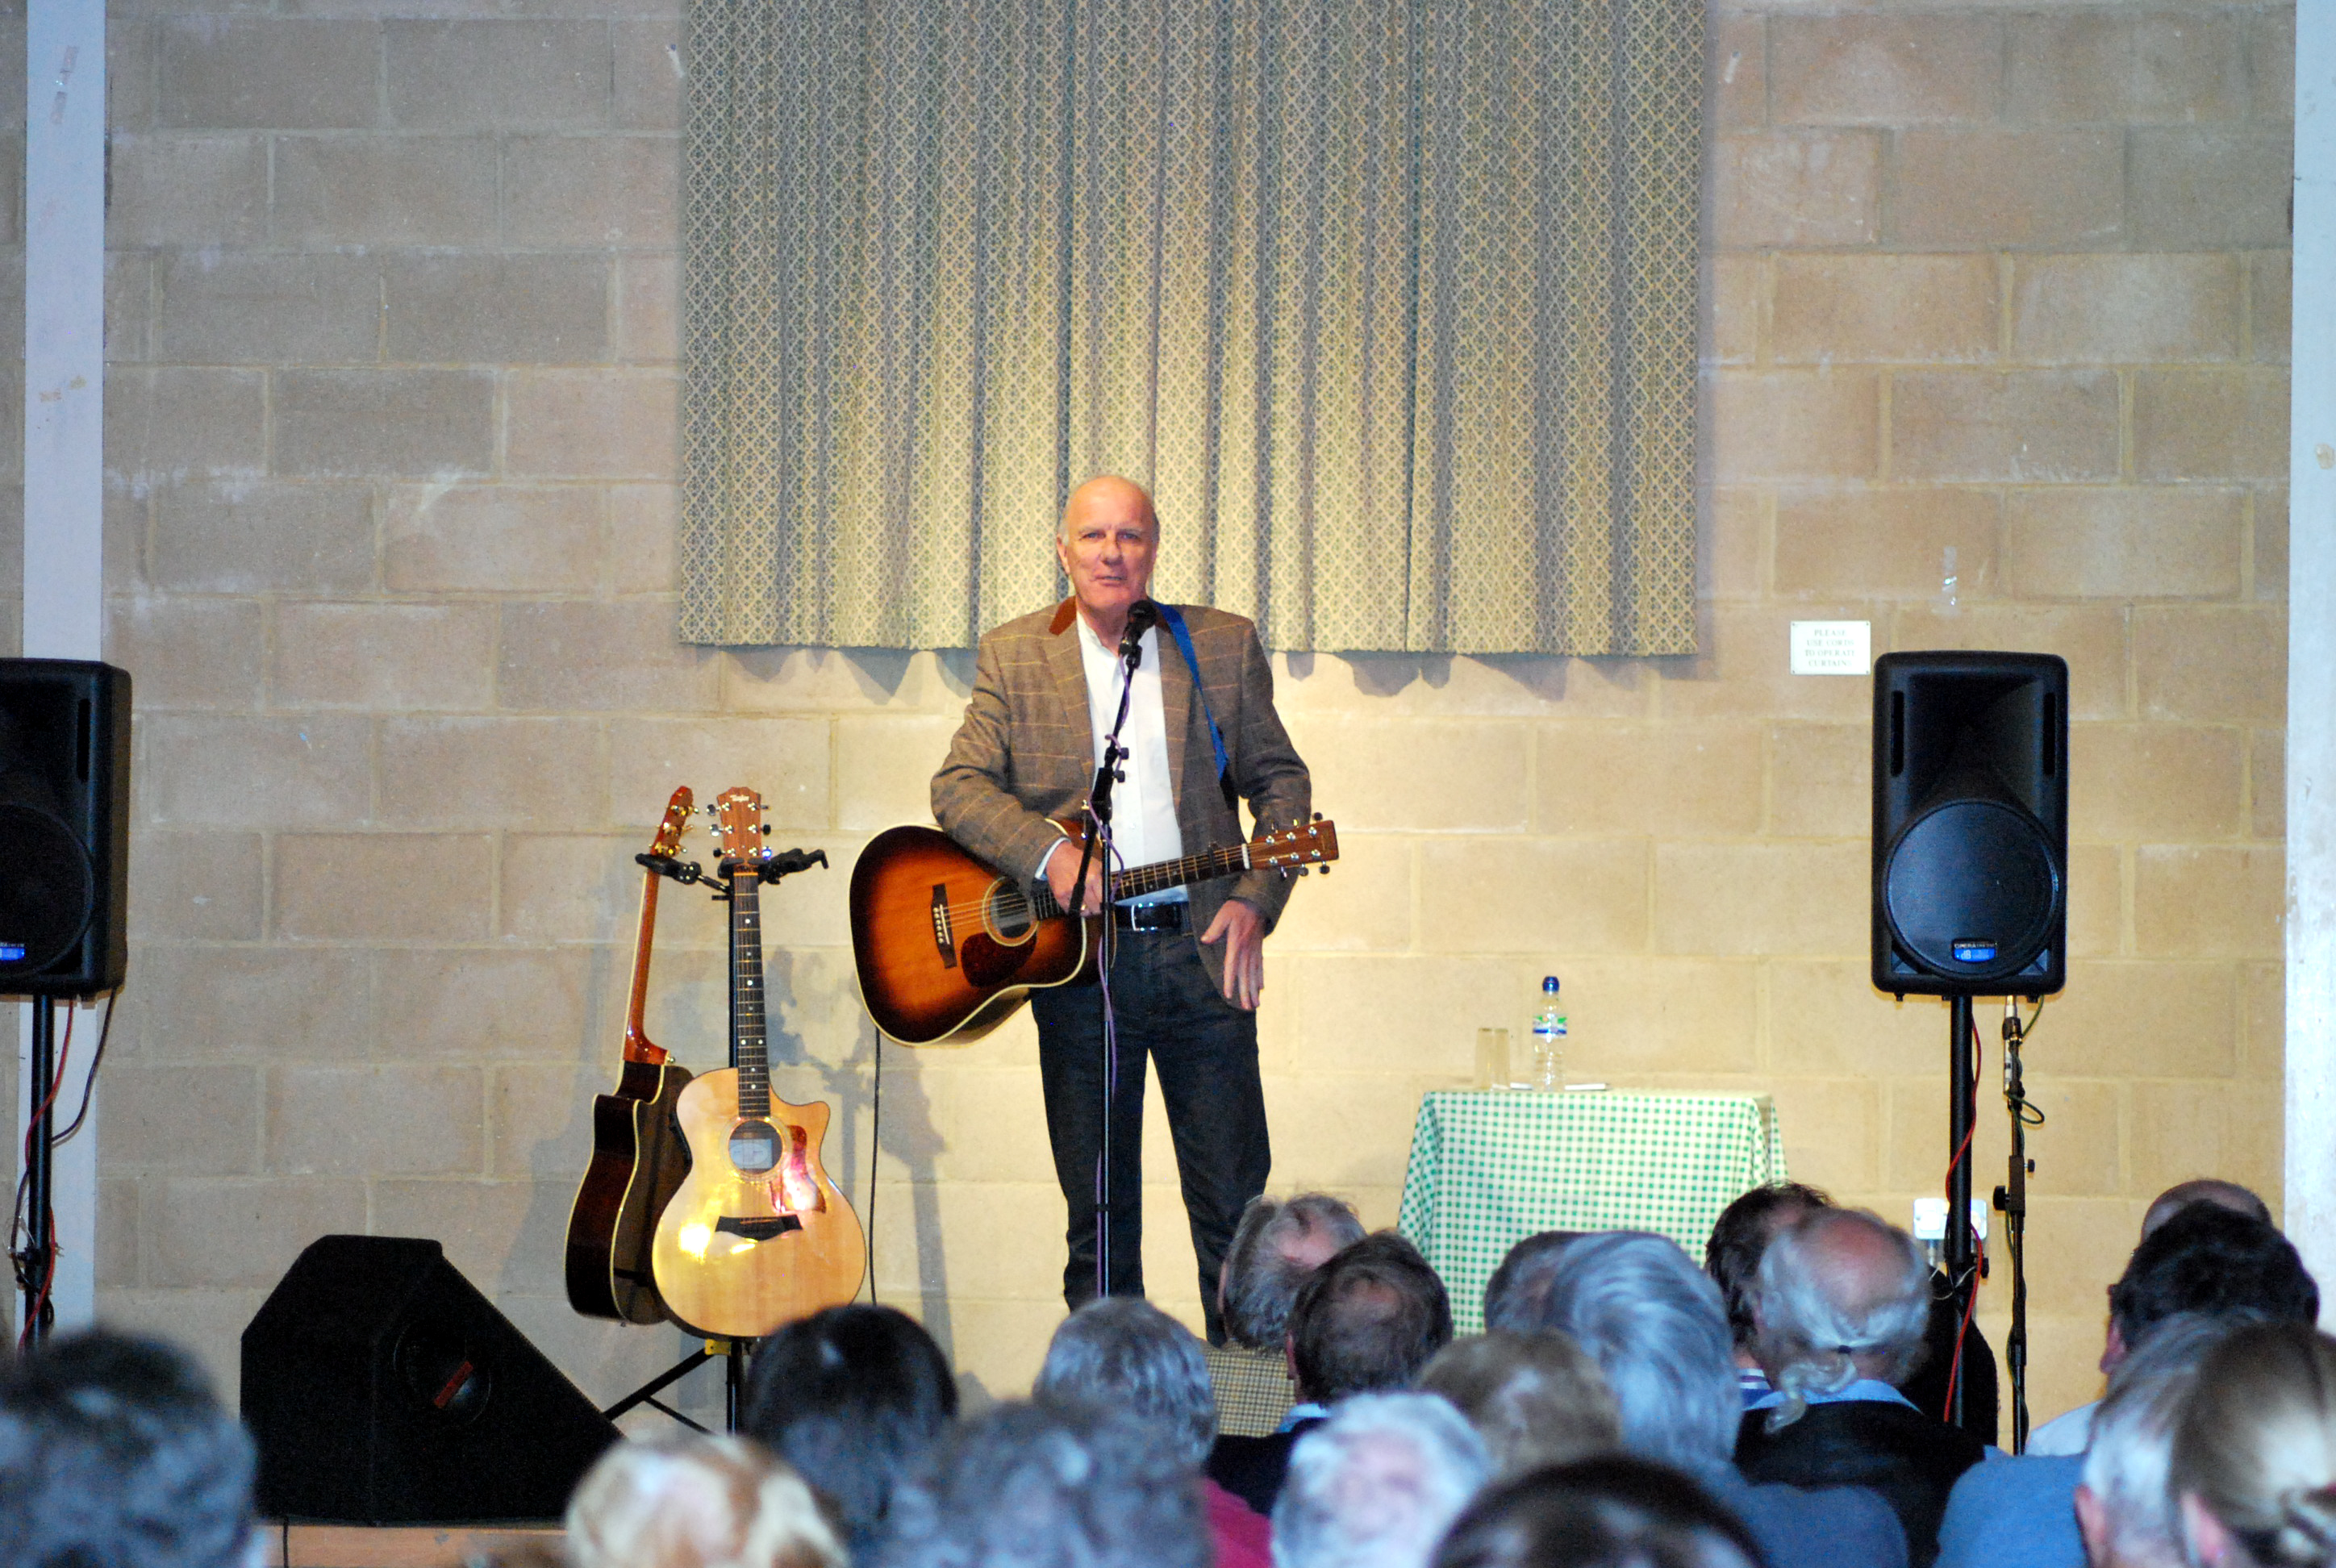 Richard Digance 26/04/14